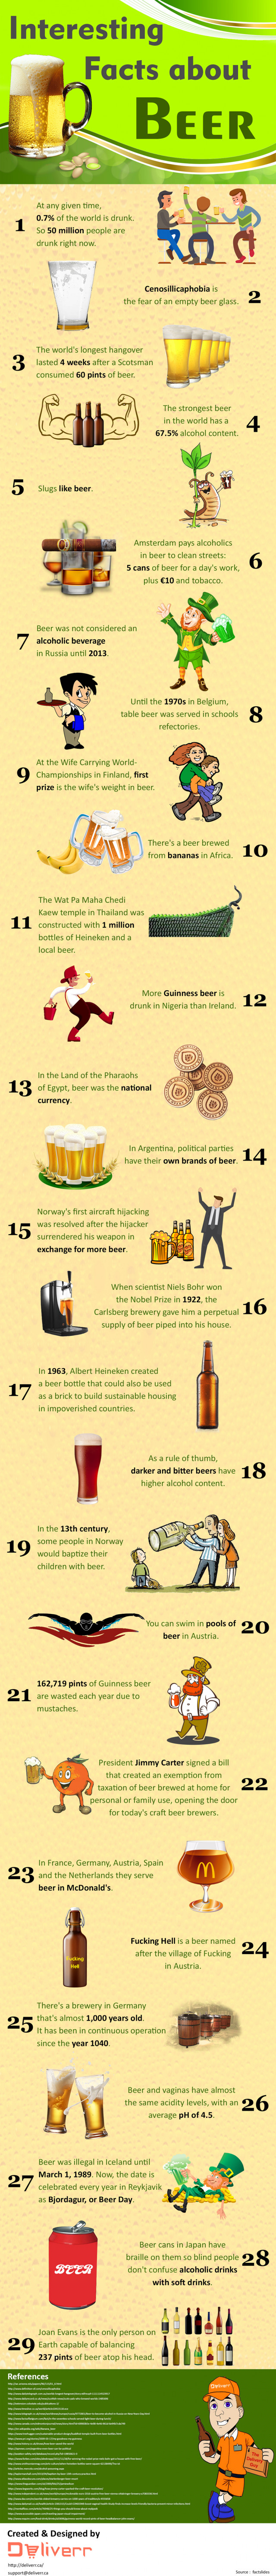 536875?_w=640 29 Interesting Facts About Beer (Infographic)